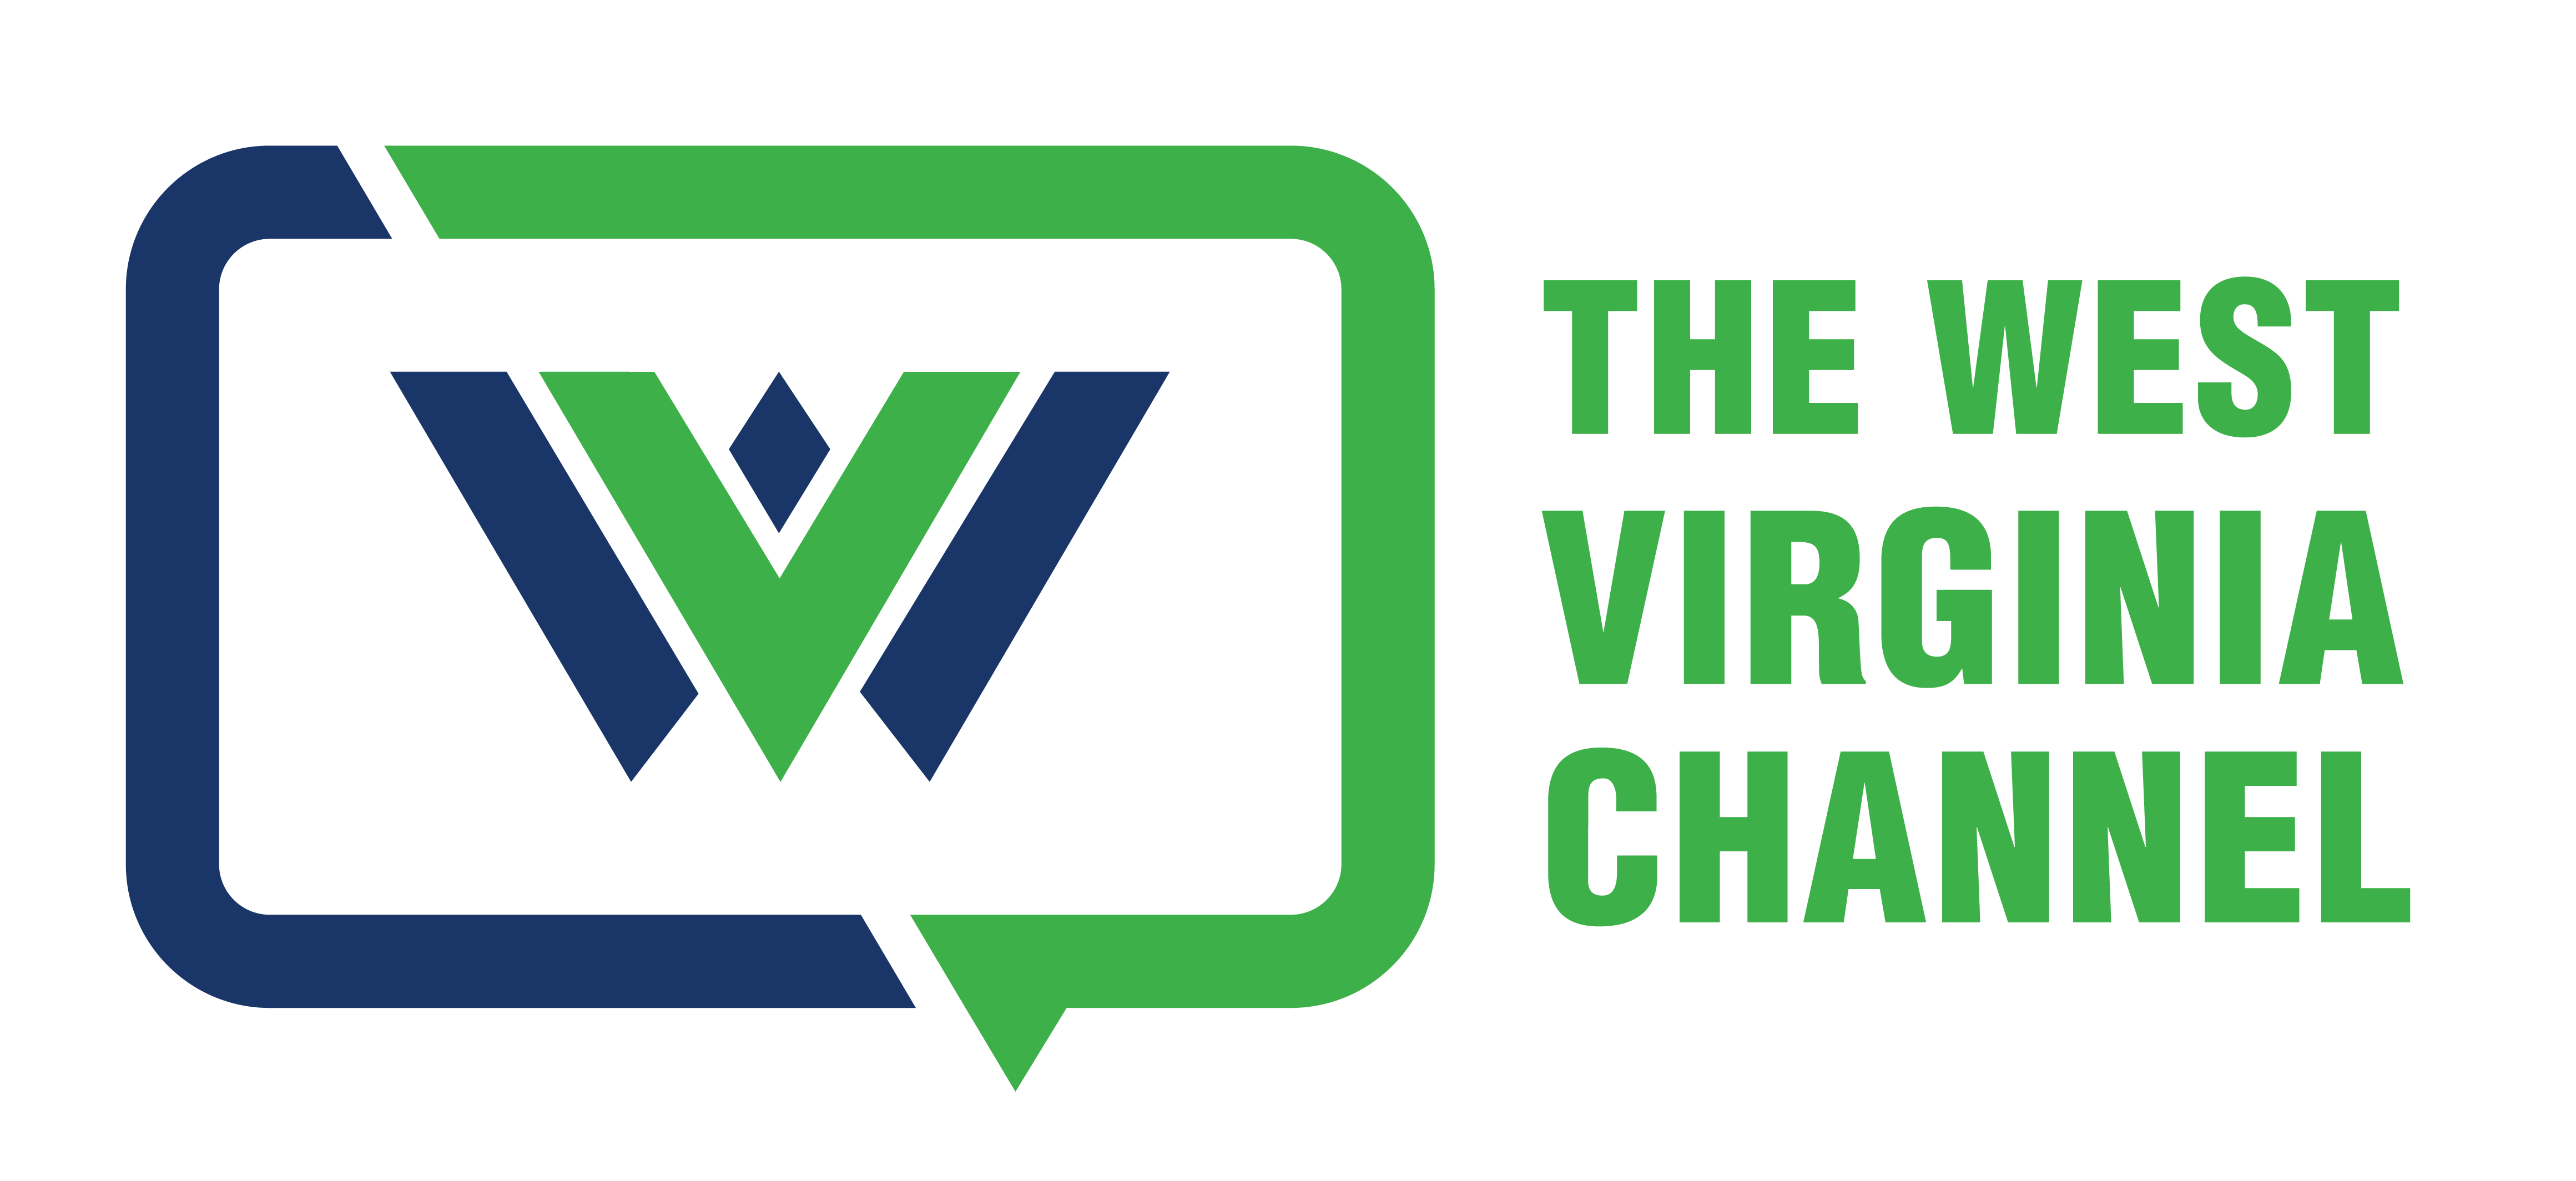 The West Virginia Channel